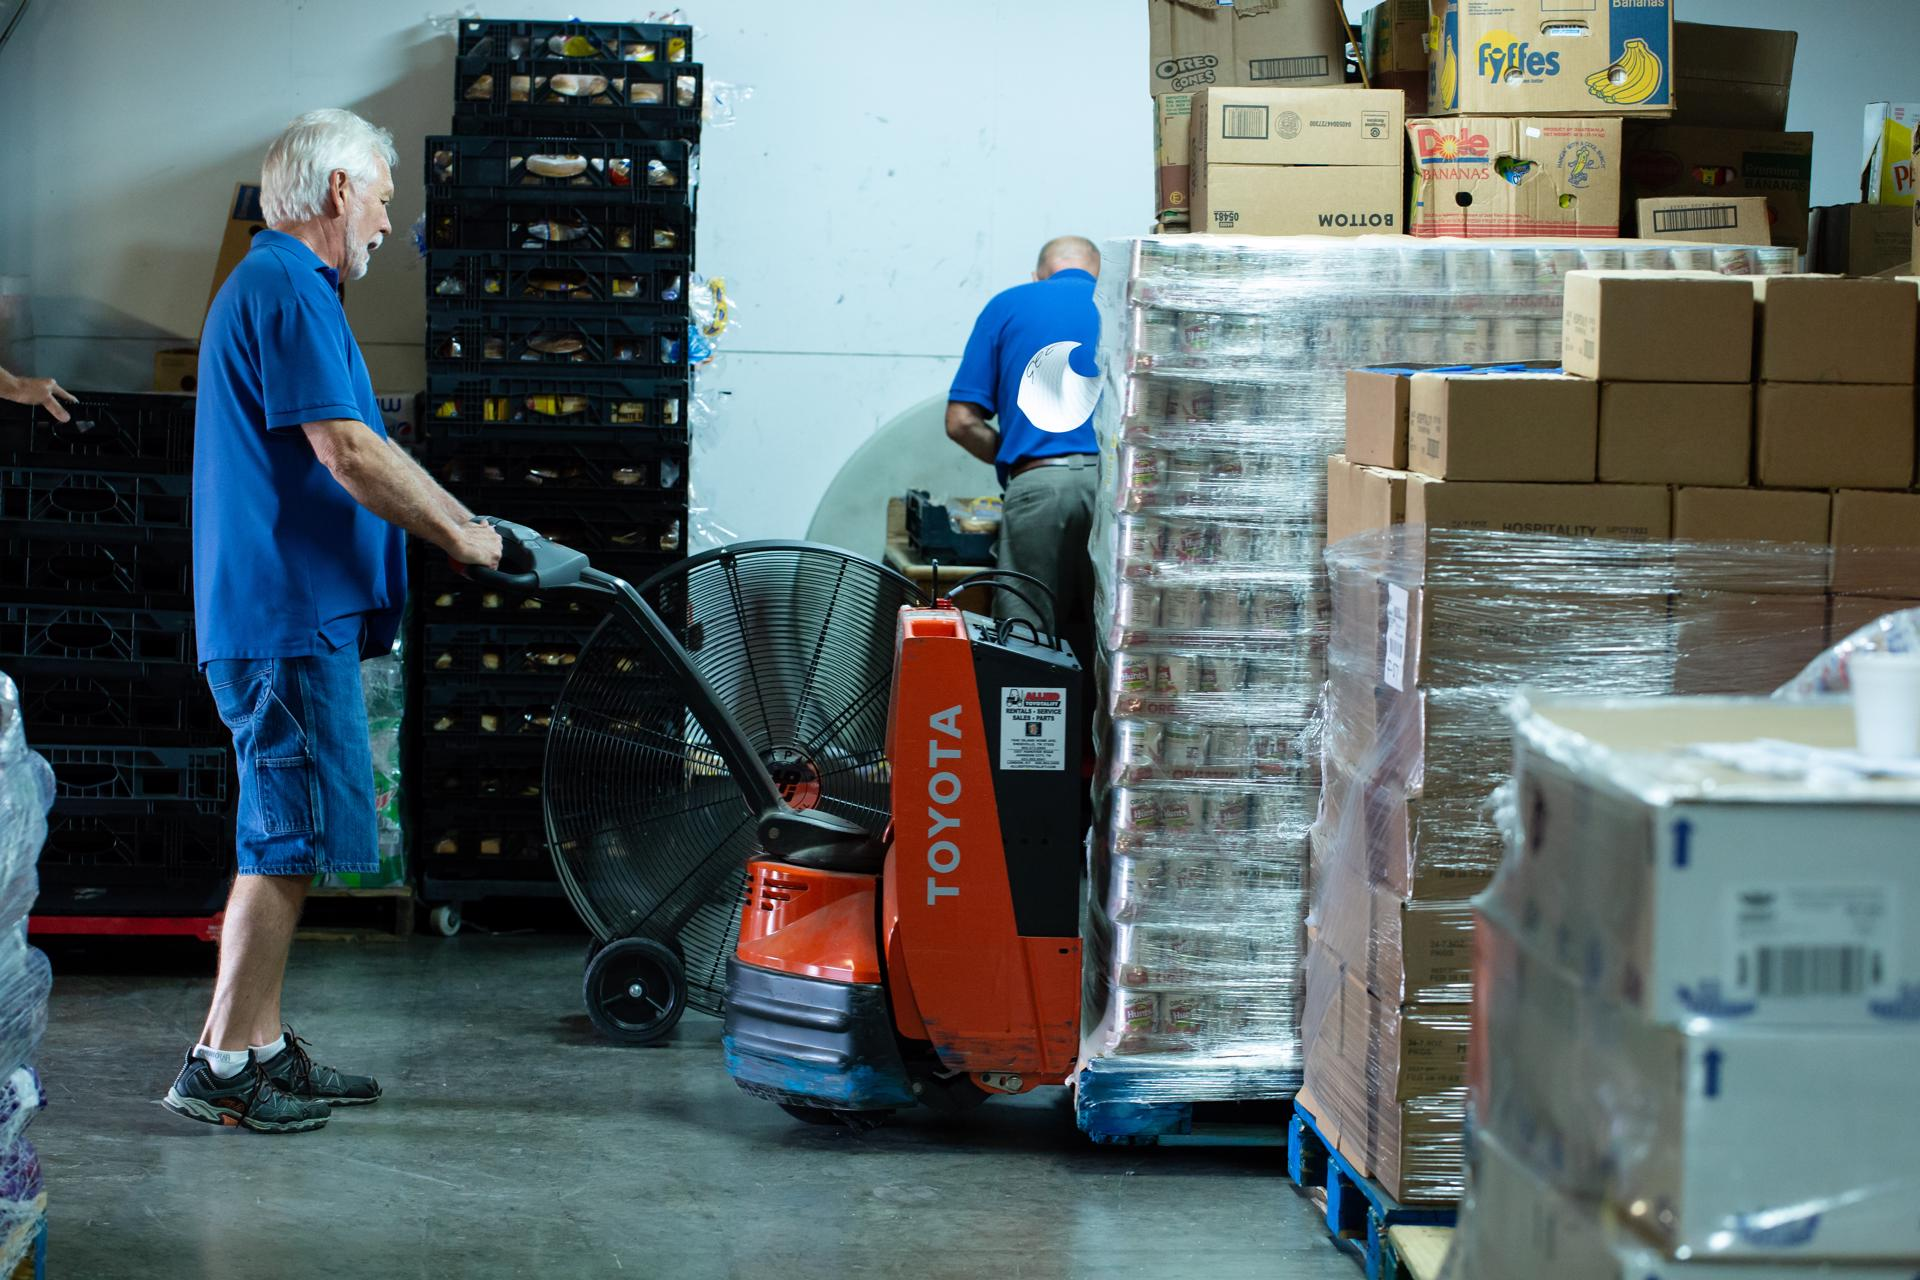 <b>Warehouse</b><br> The warehouse is responsible for the receiving of food, bulk food item separation/ packing, and food pickup. We receive items daily by pallet and boxes. If you've used hand trucks and pallet jacks before, we have a spot for you on our team.